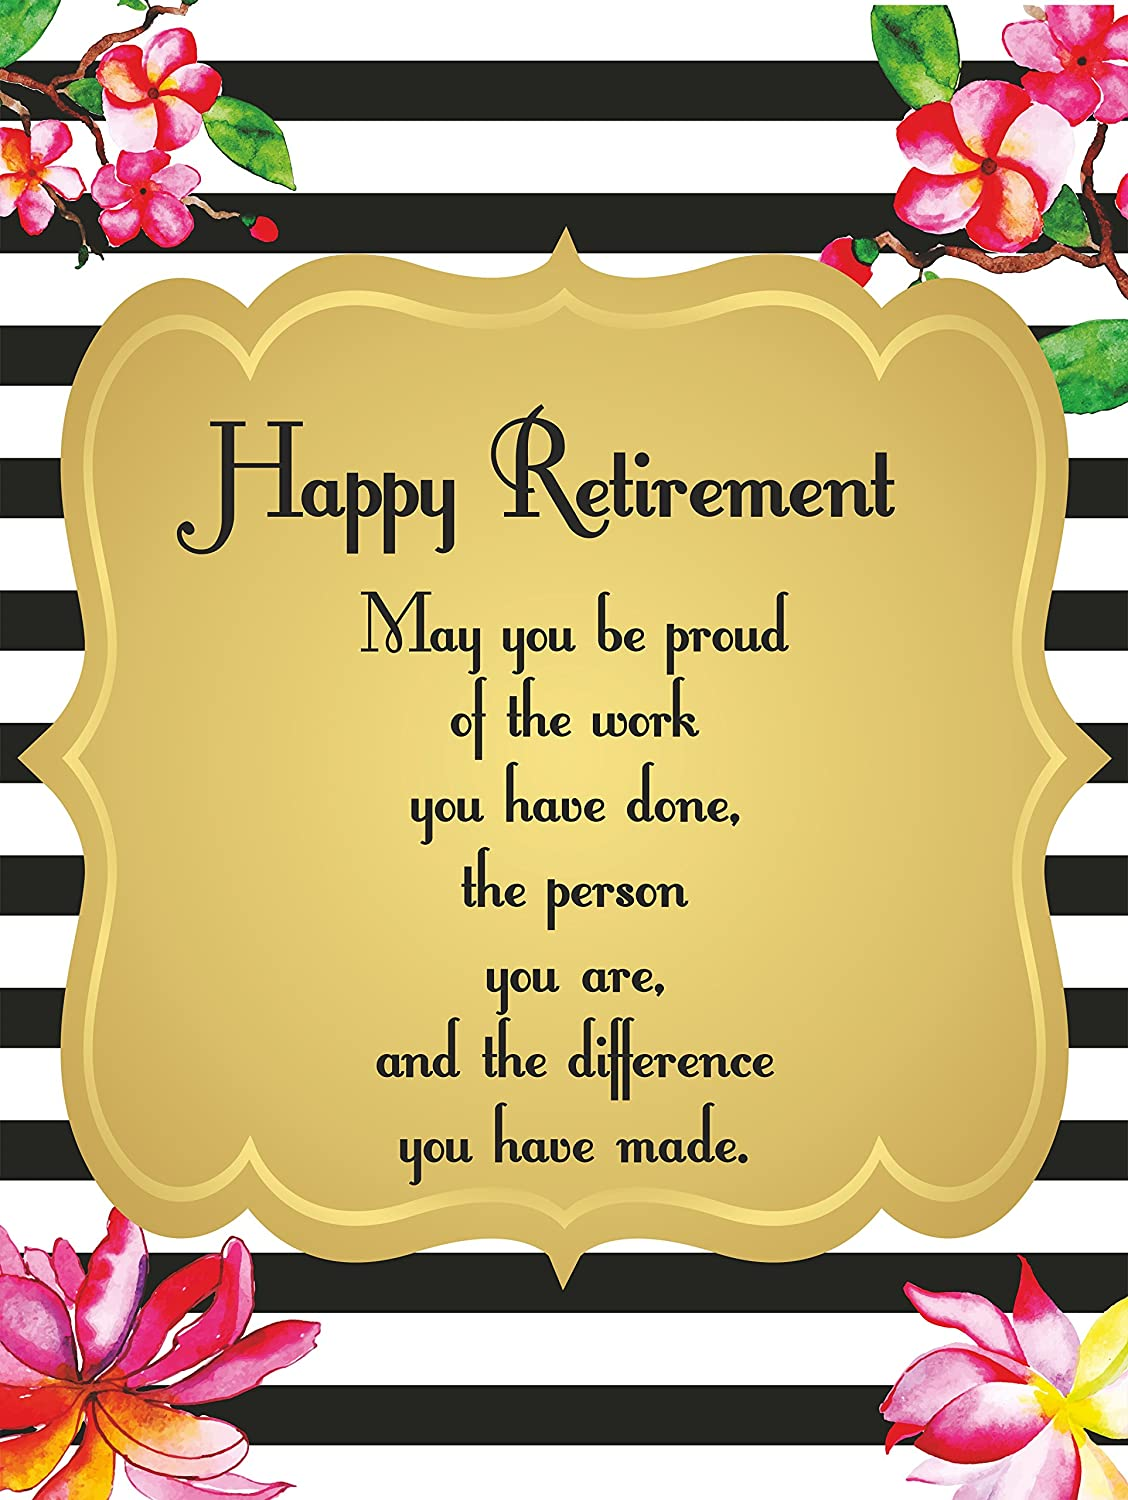 photograph relating to Retirement Card Printable titled : Delighted Retirement Wants Decorations Quotations Reward